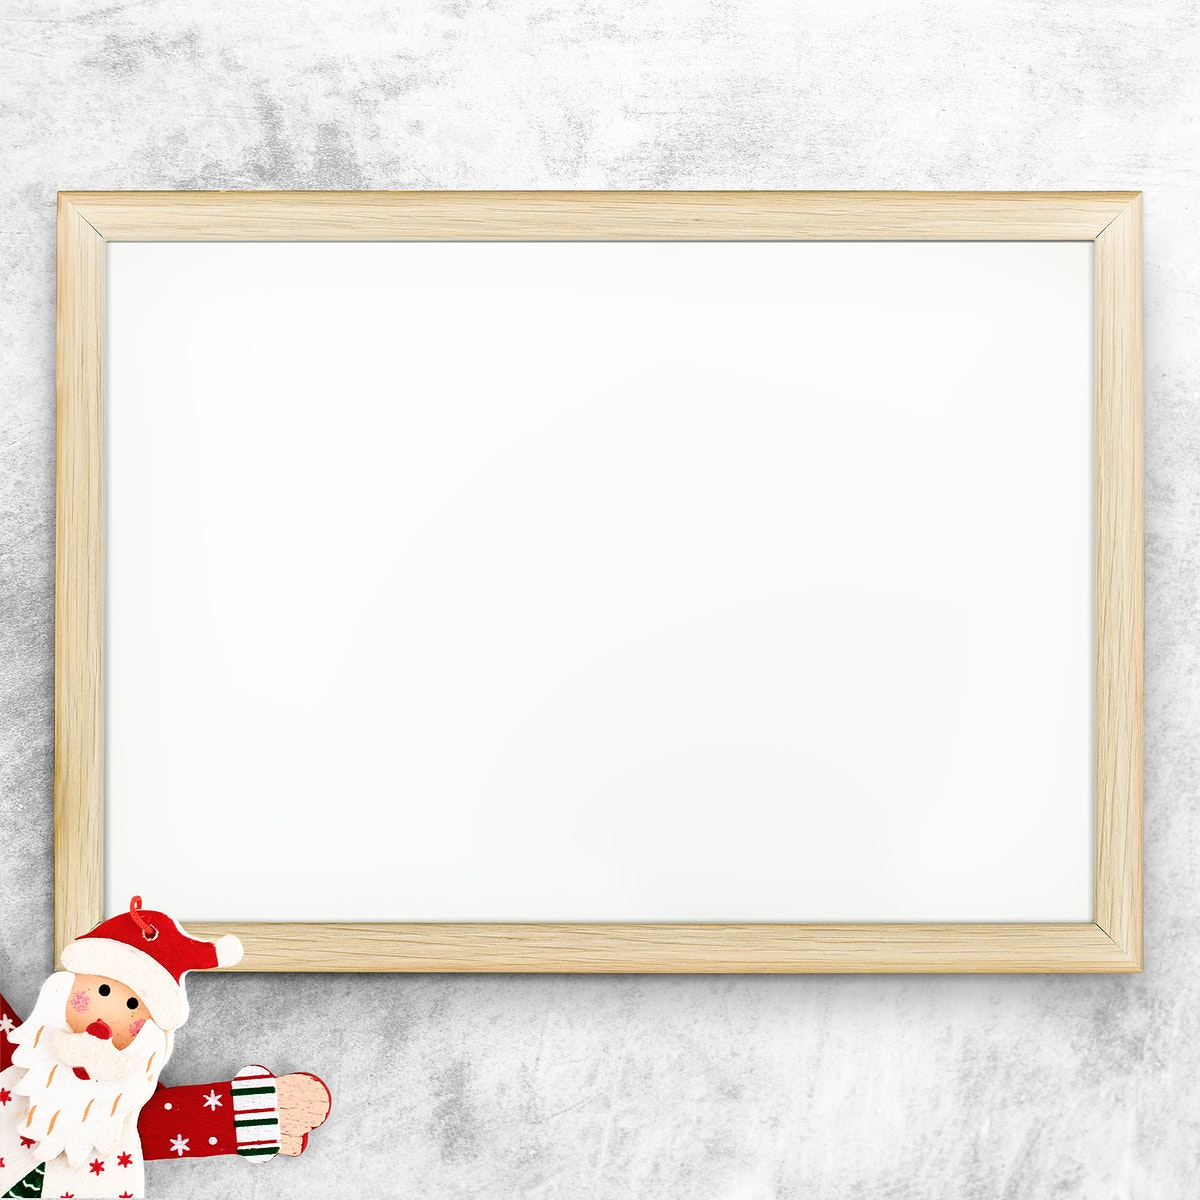 Wooden frame mockup with Christmas decorations